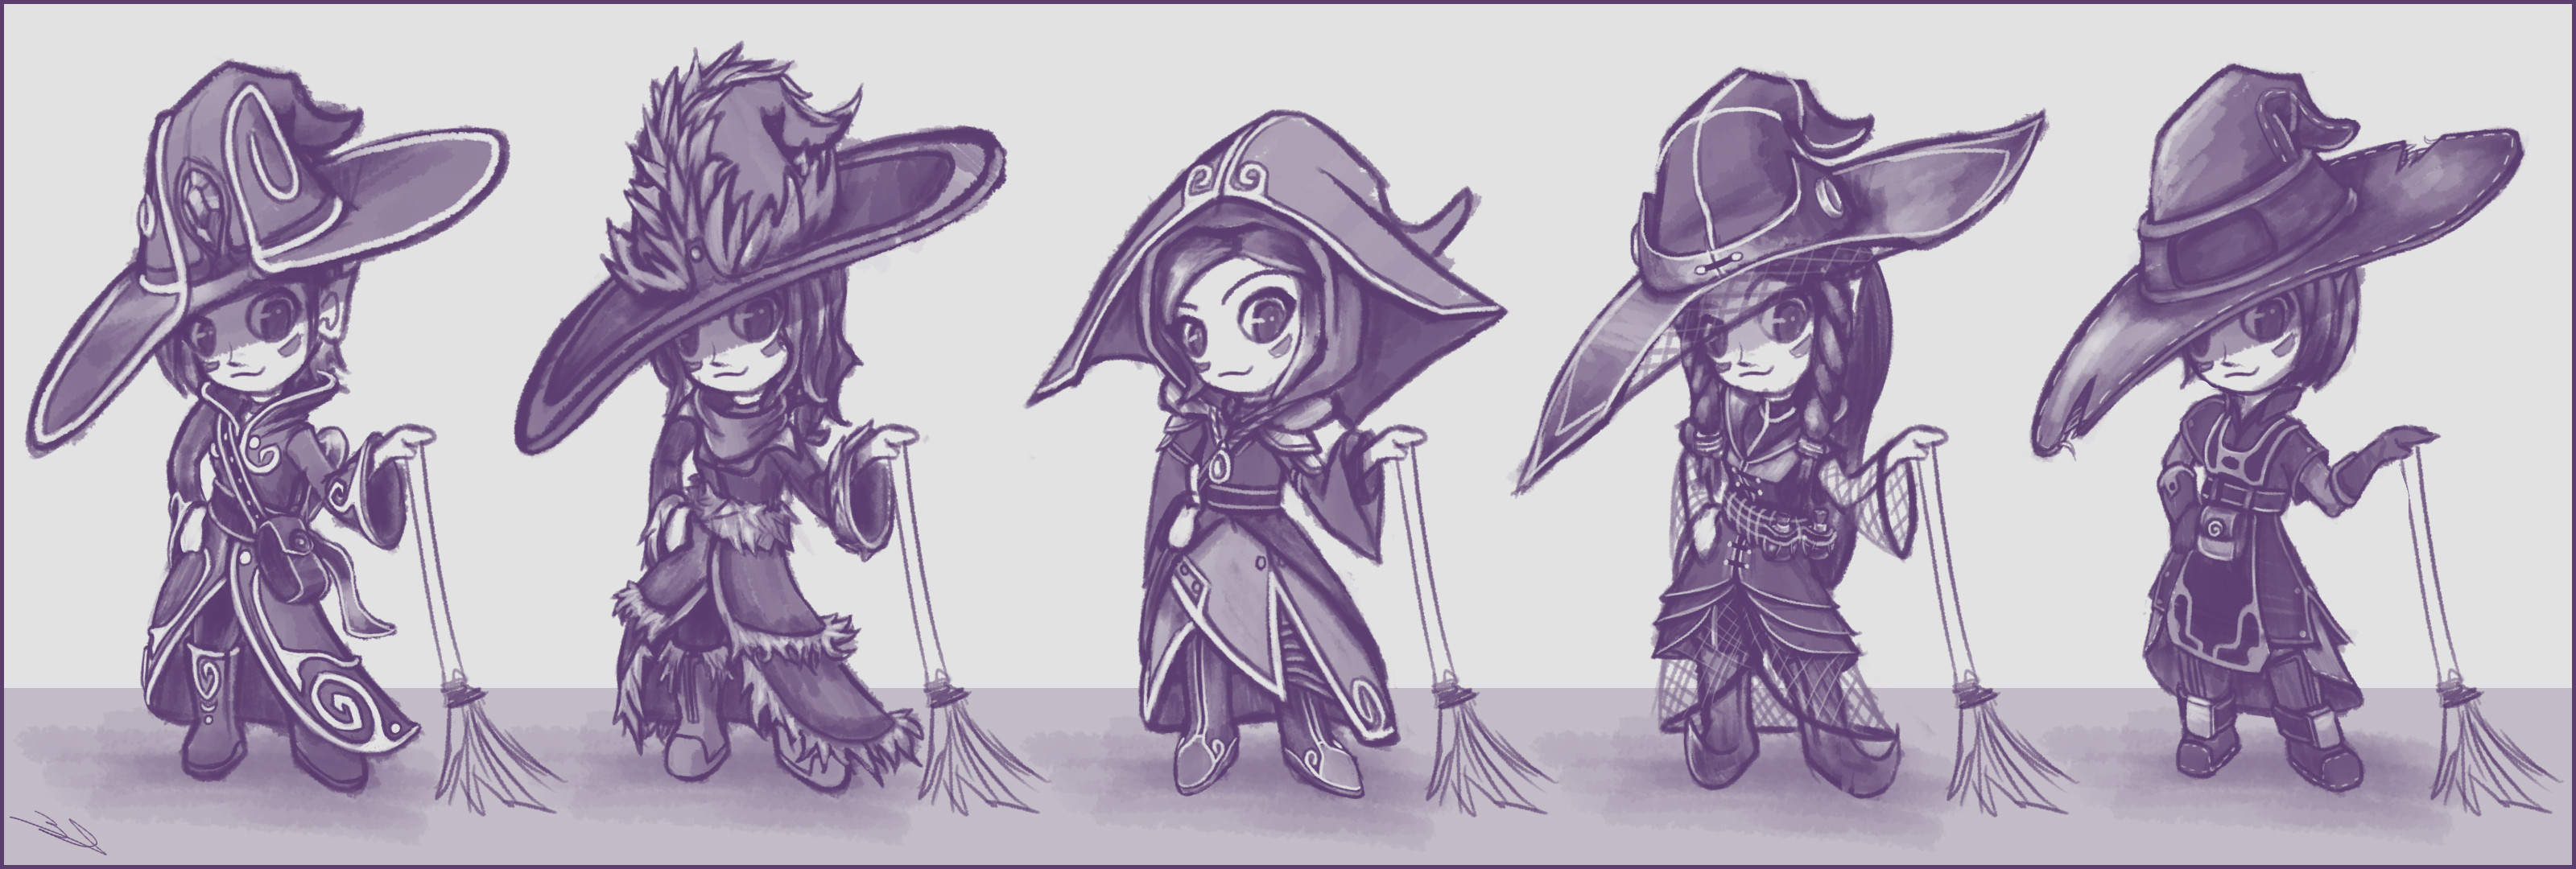 Initial costume concepts! The 5th outfit was chosen by the majority of people asked.